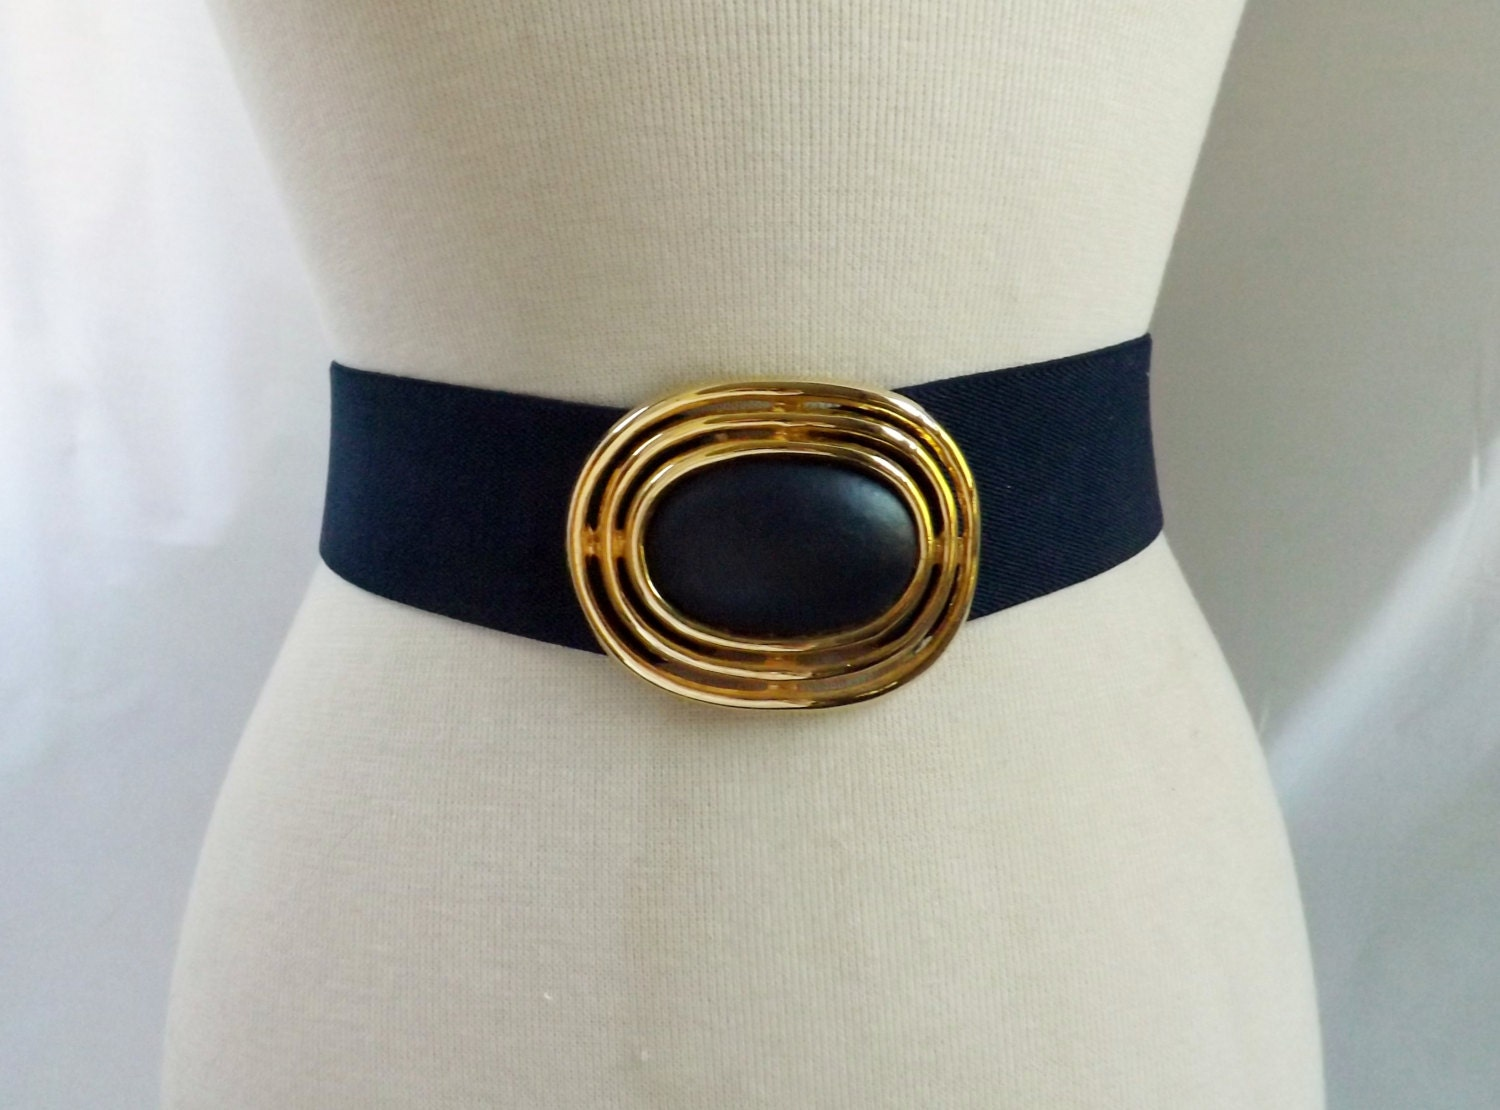 wide cinch belt 1980s stretchy navy blue gold by